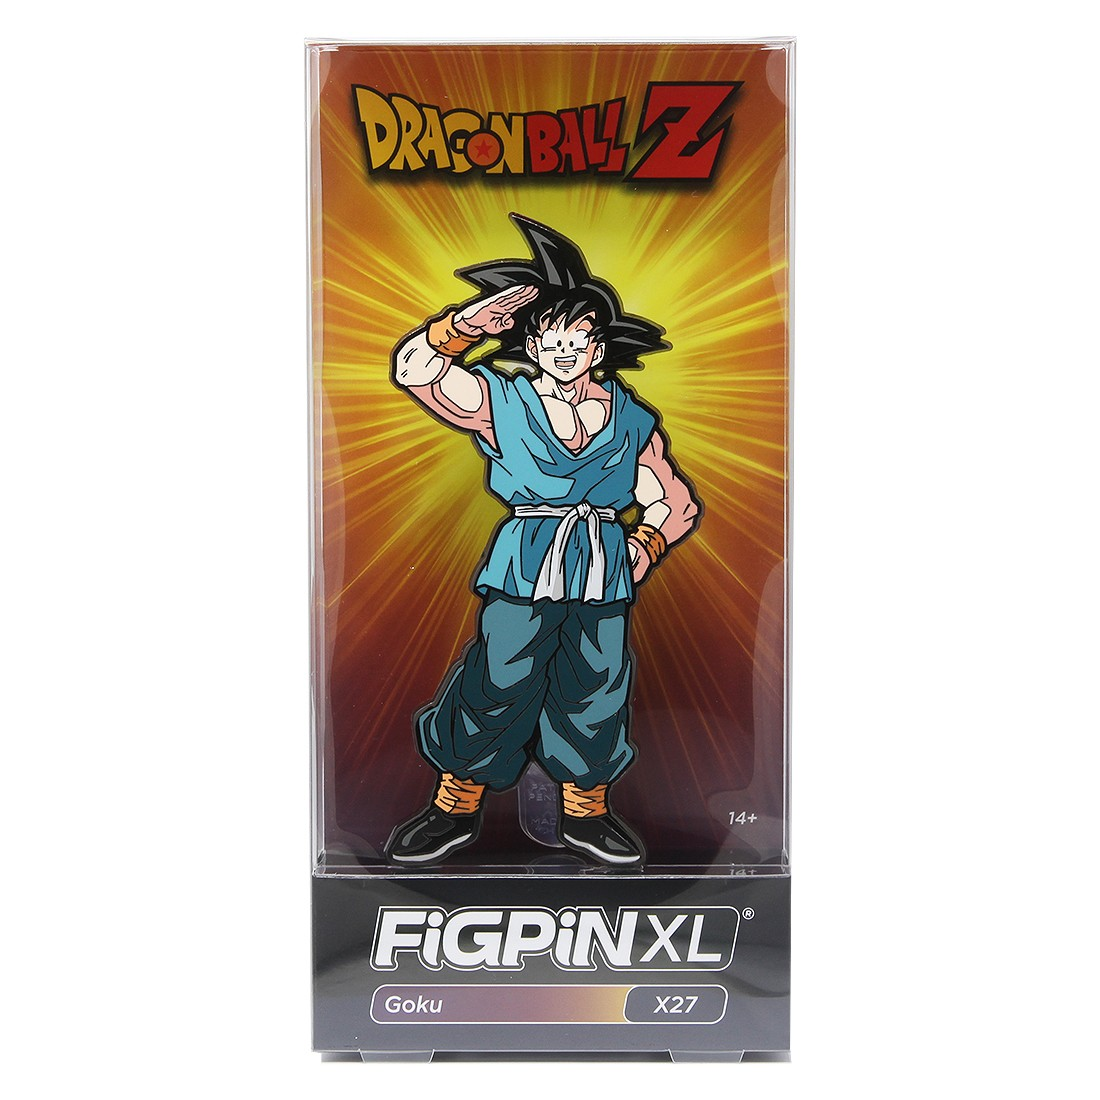 Dragon Ball Z - Goku FiGPin XL # X27